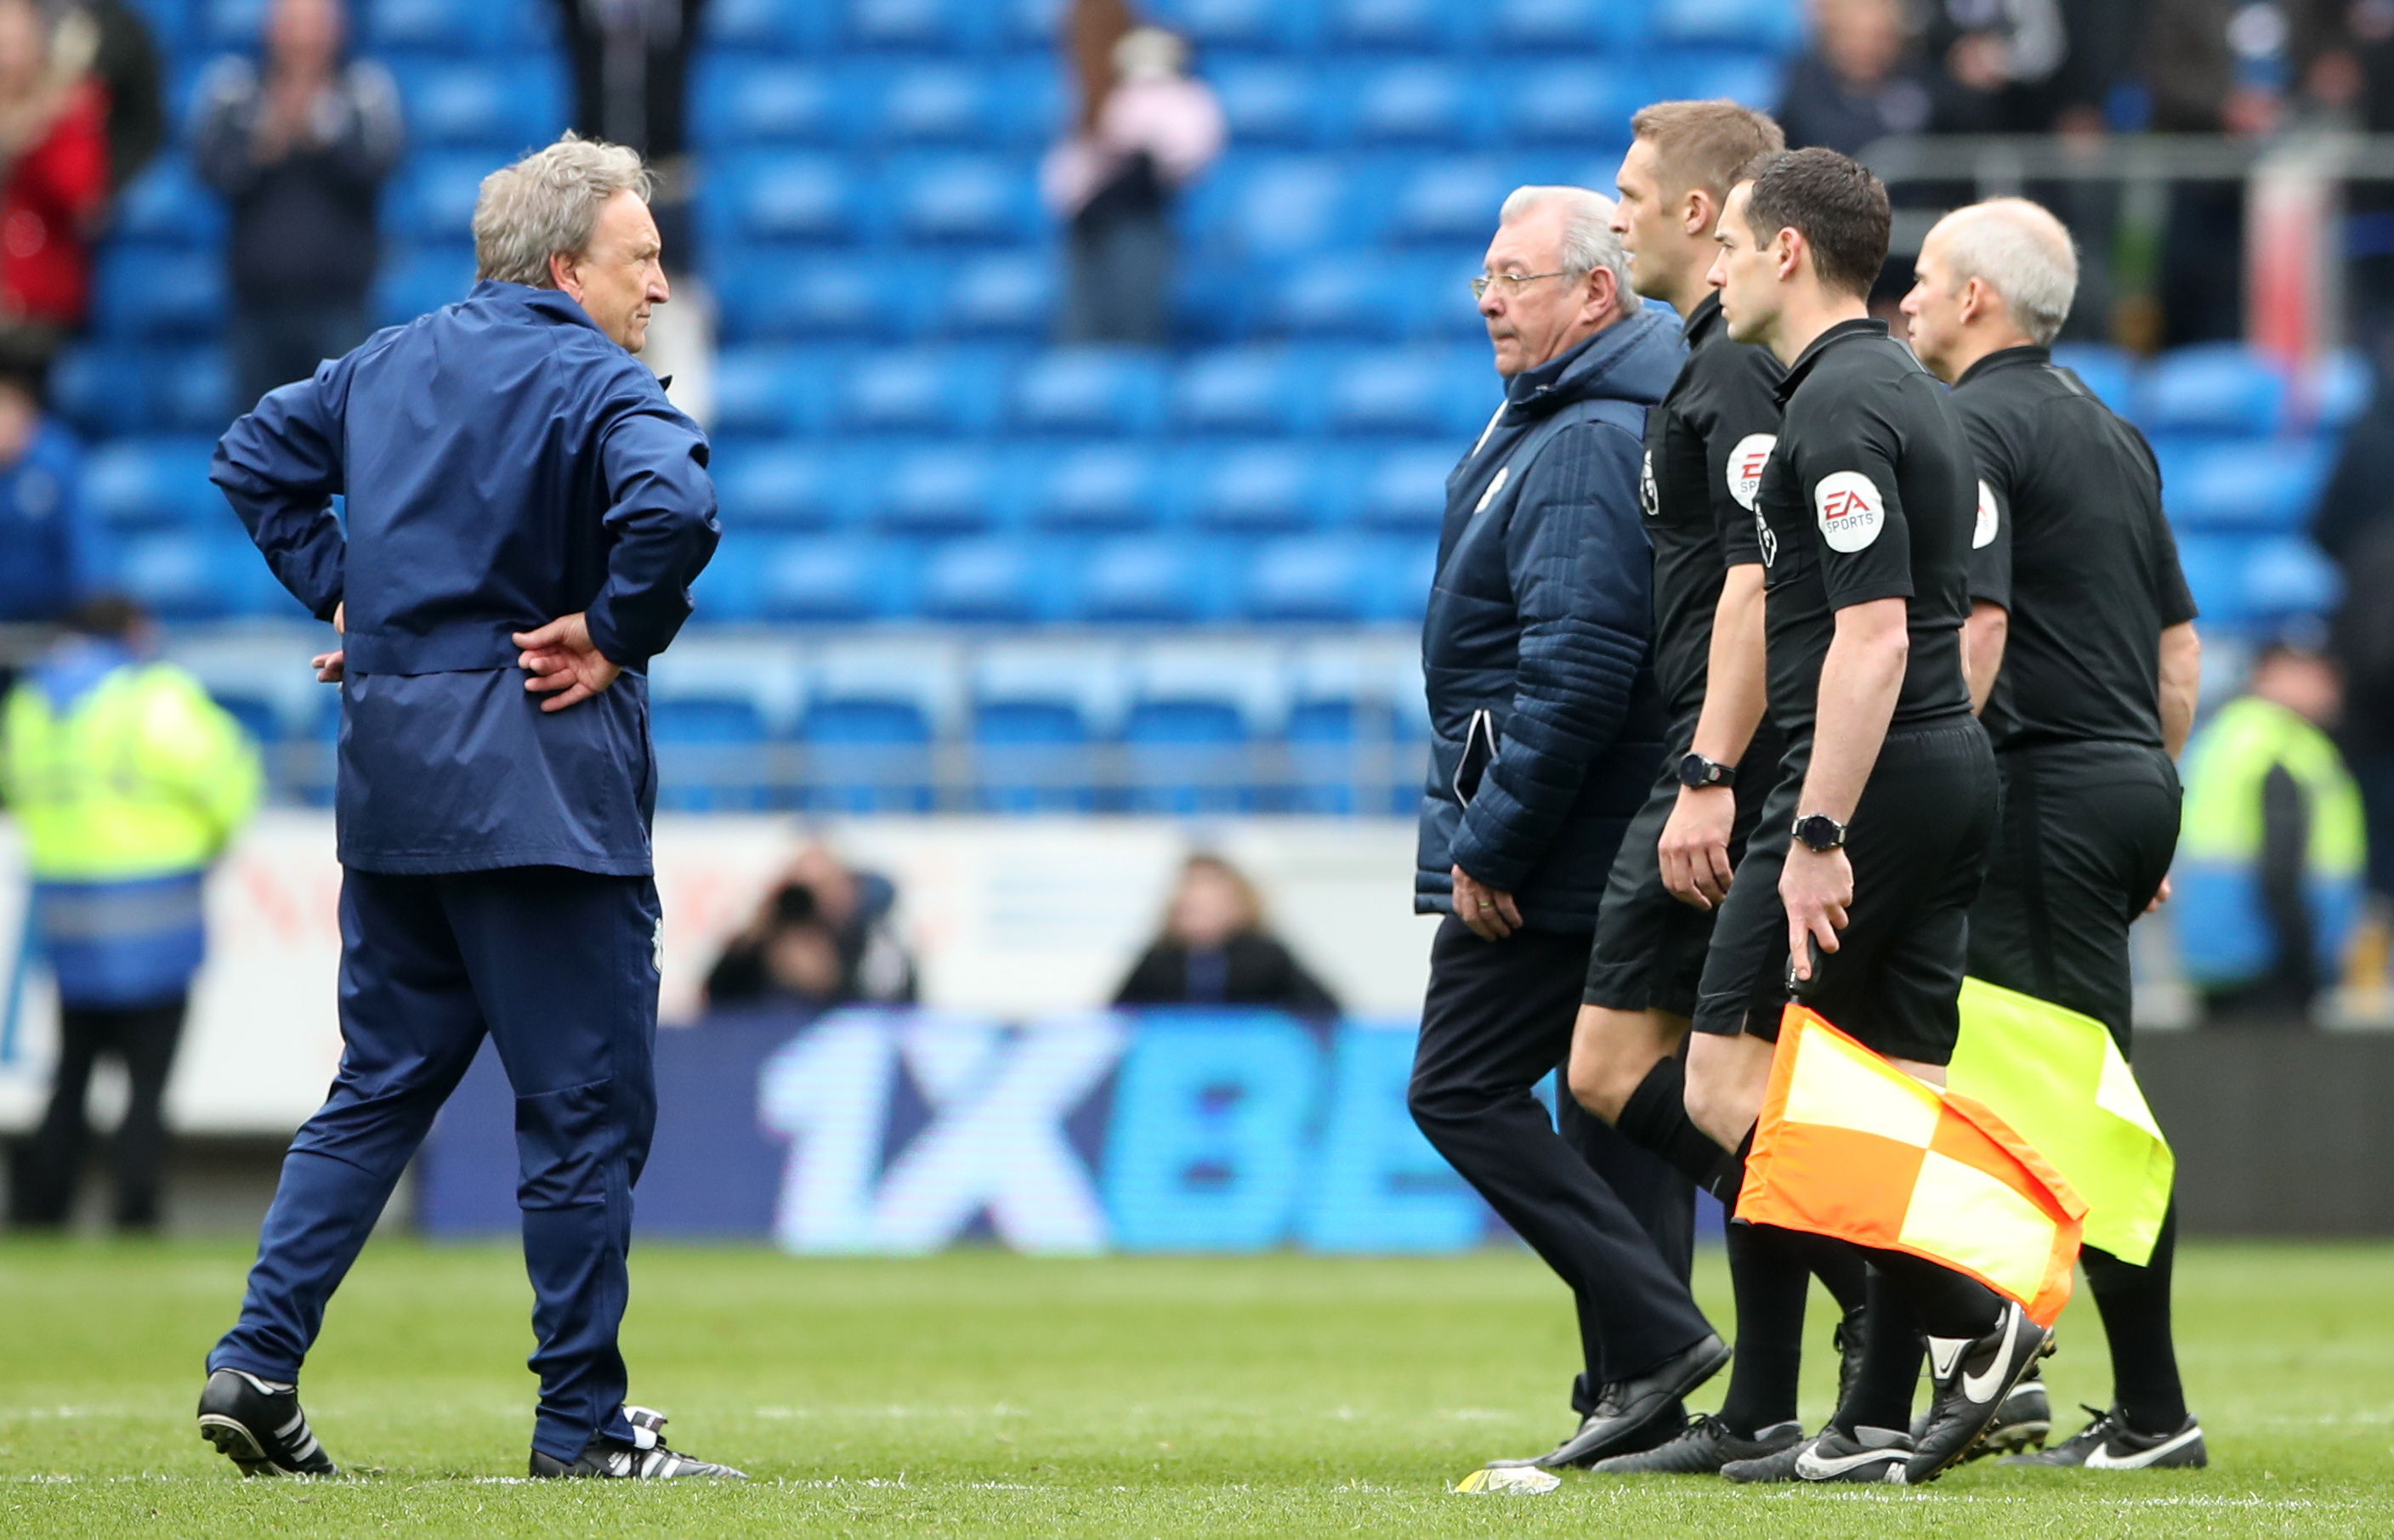 Cardiff City manager Neil Warnock (left) after the Premier League match at the Cardiff City Stadium, Cardiff